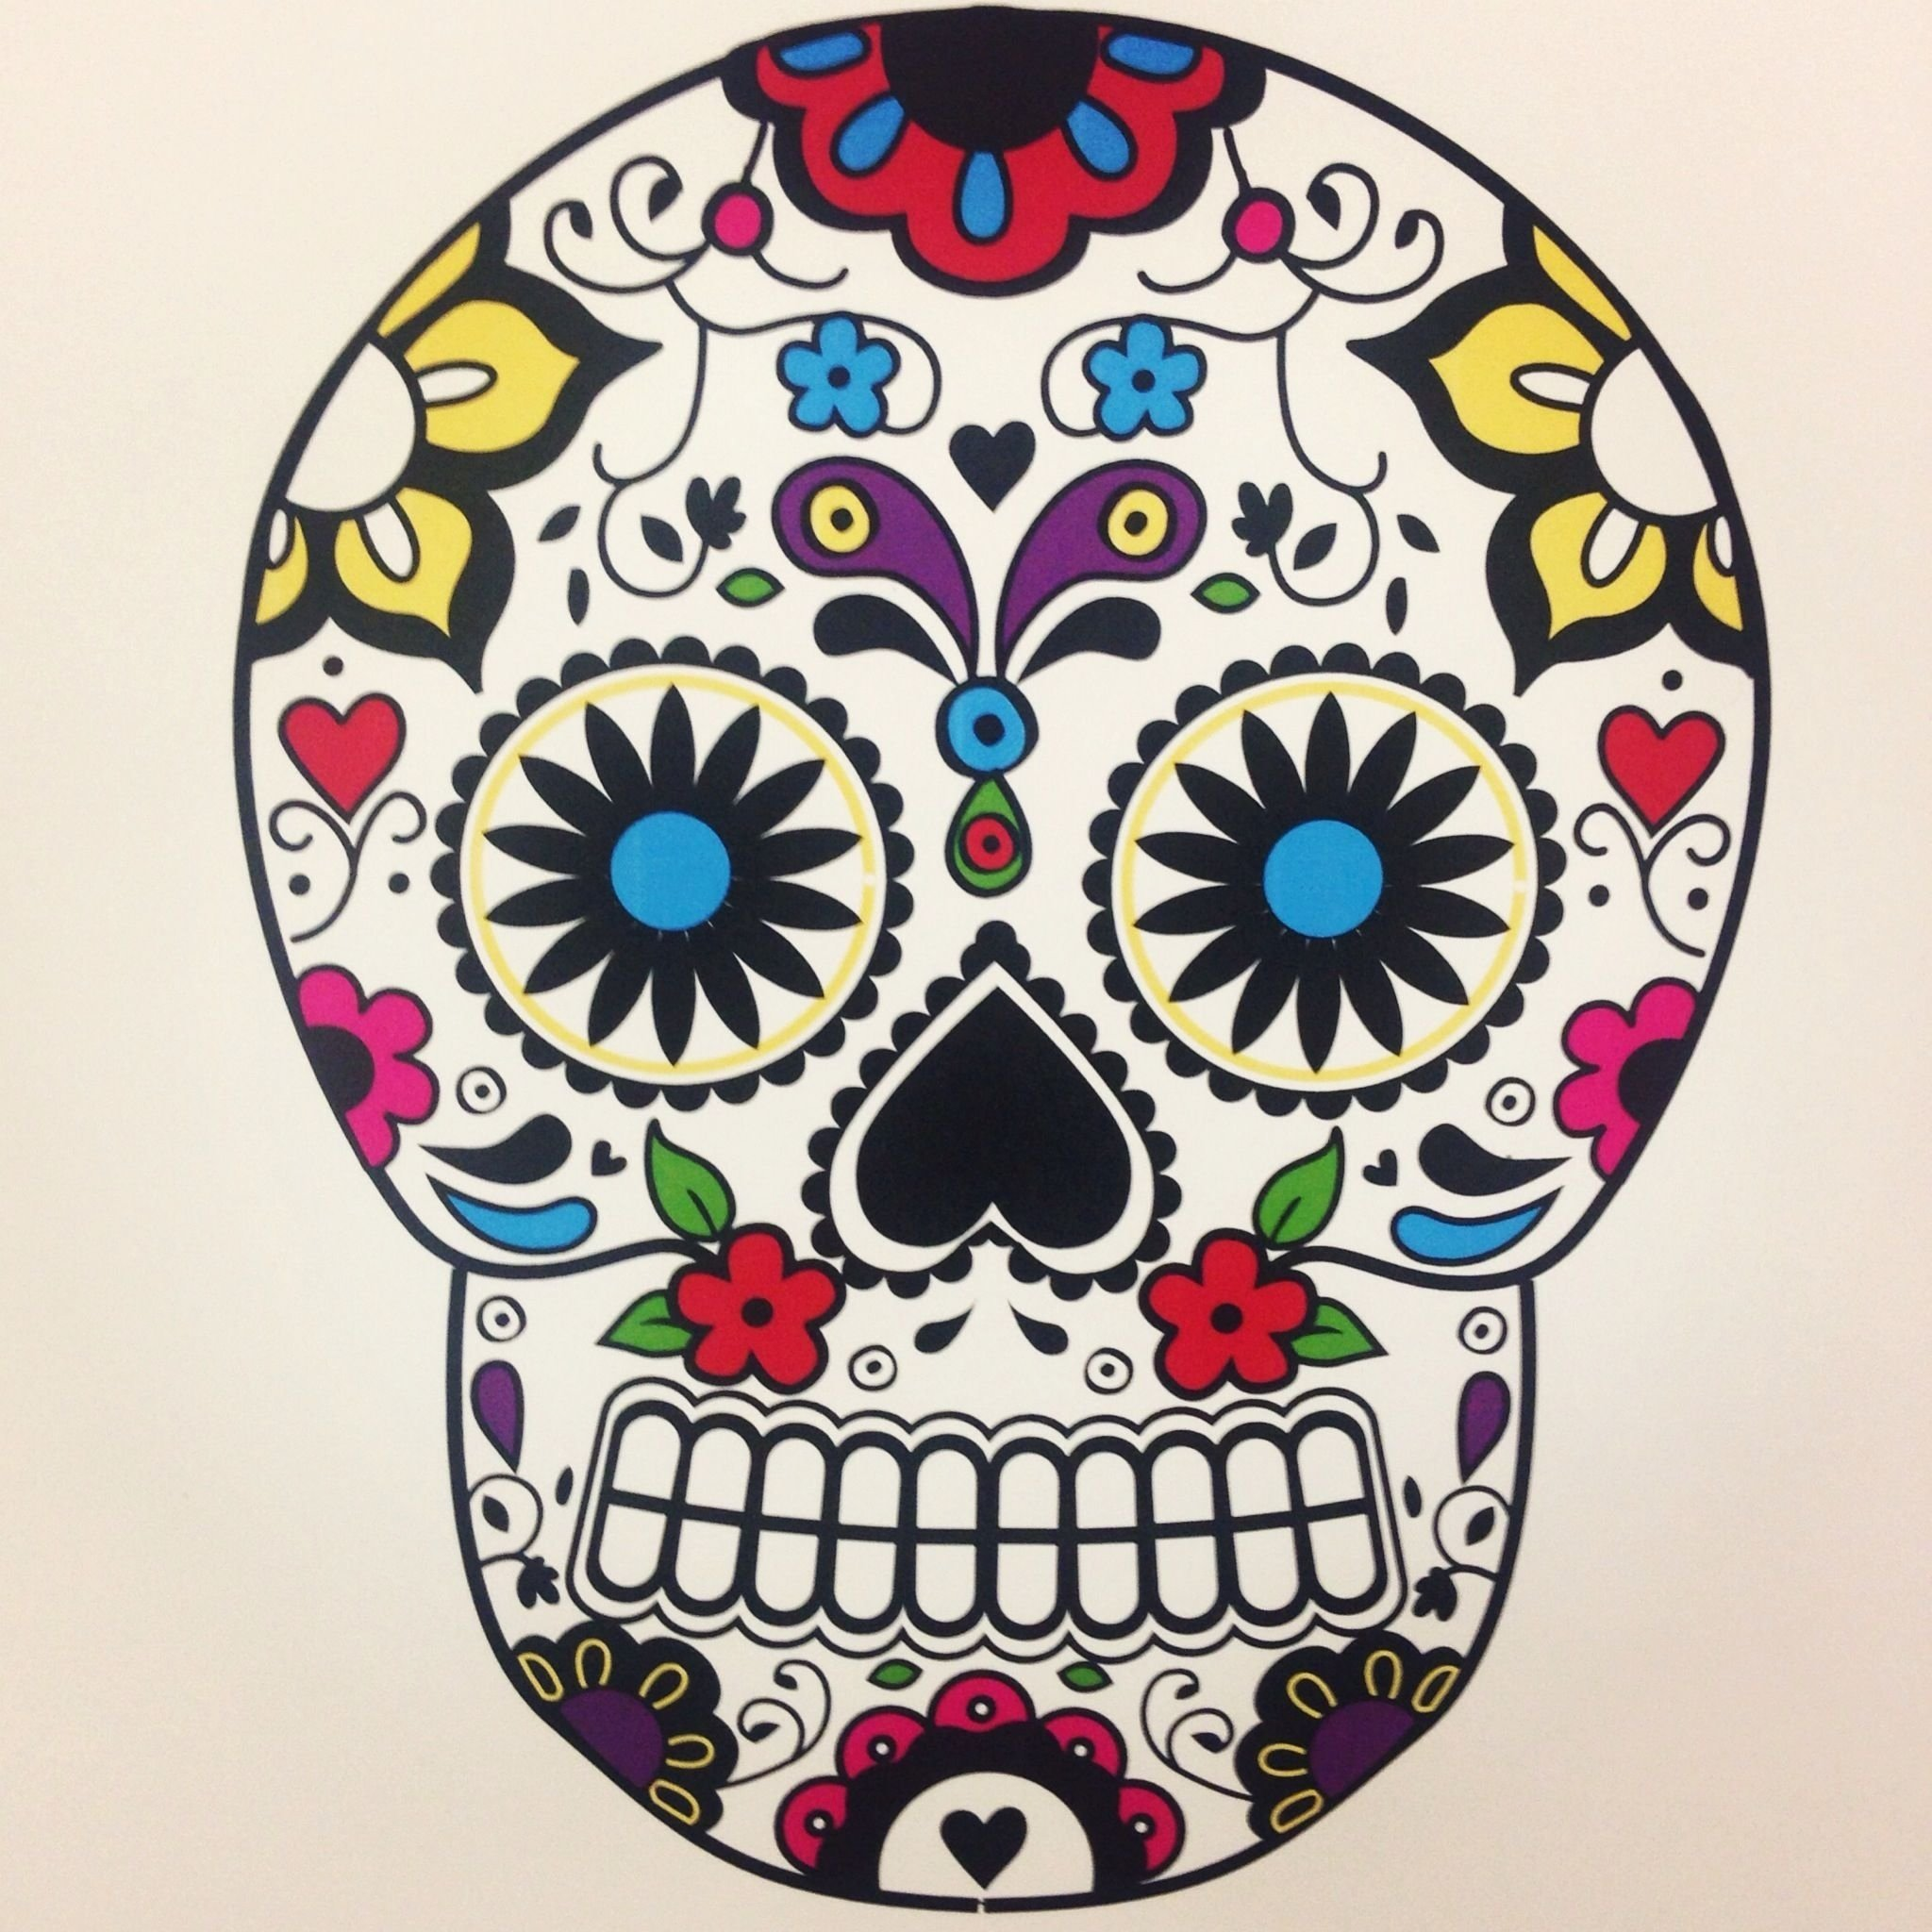 10 Famous Day Of The Dead Craft Ideas people celebrate dia de los muertos to honor their deceased loves